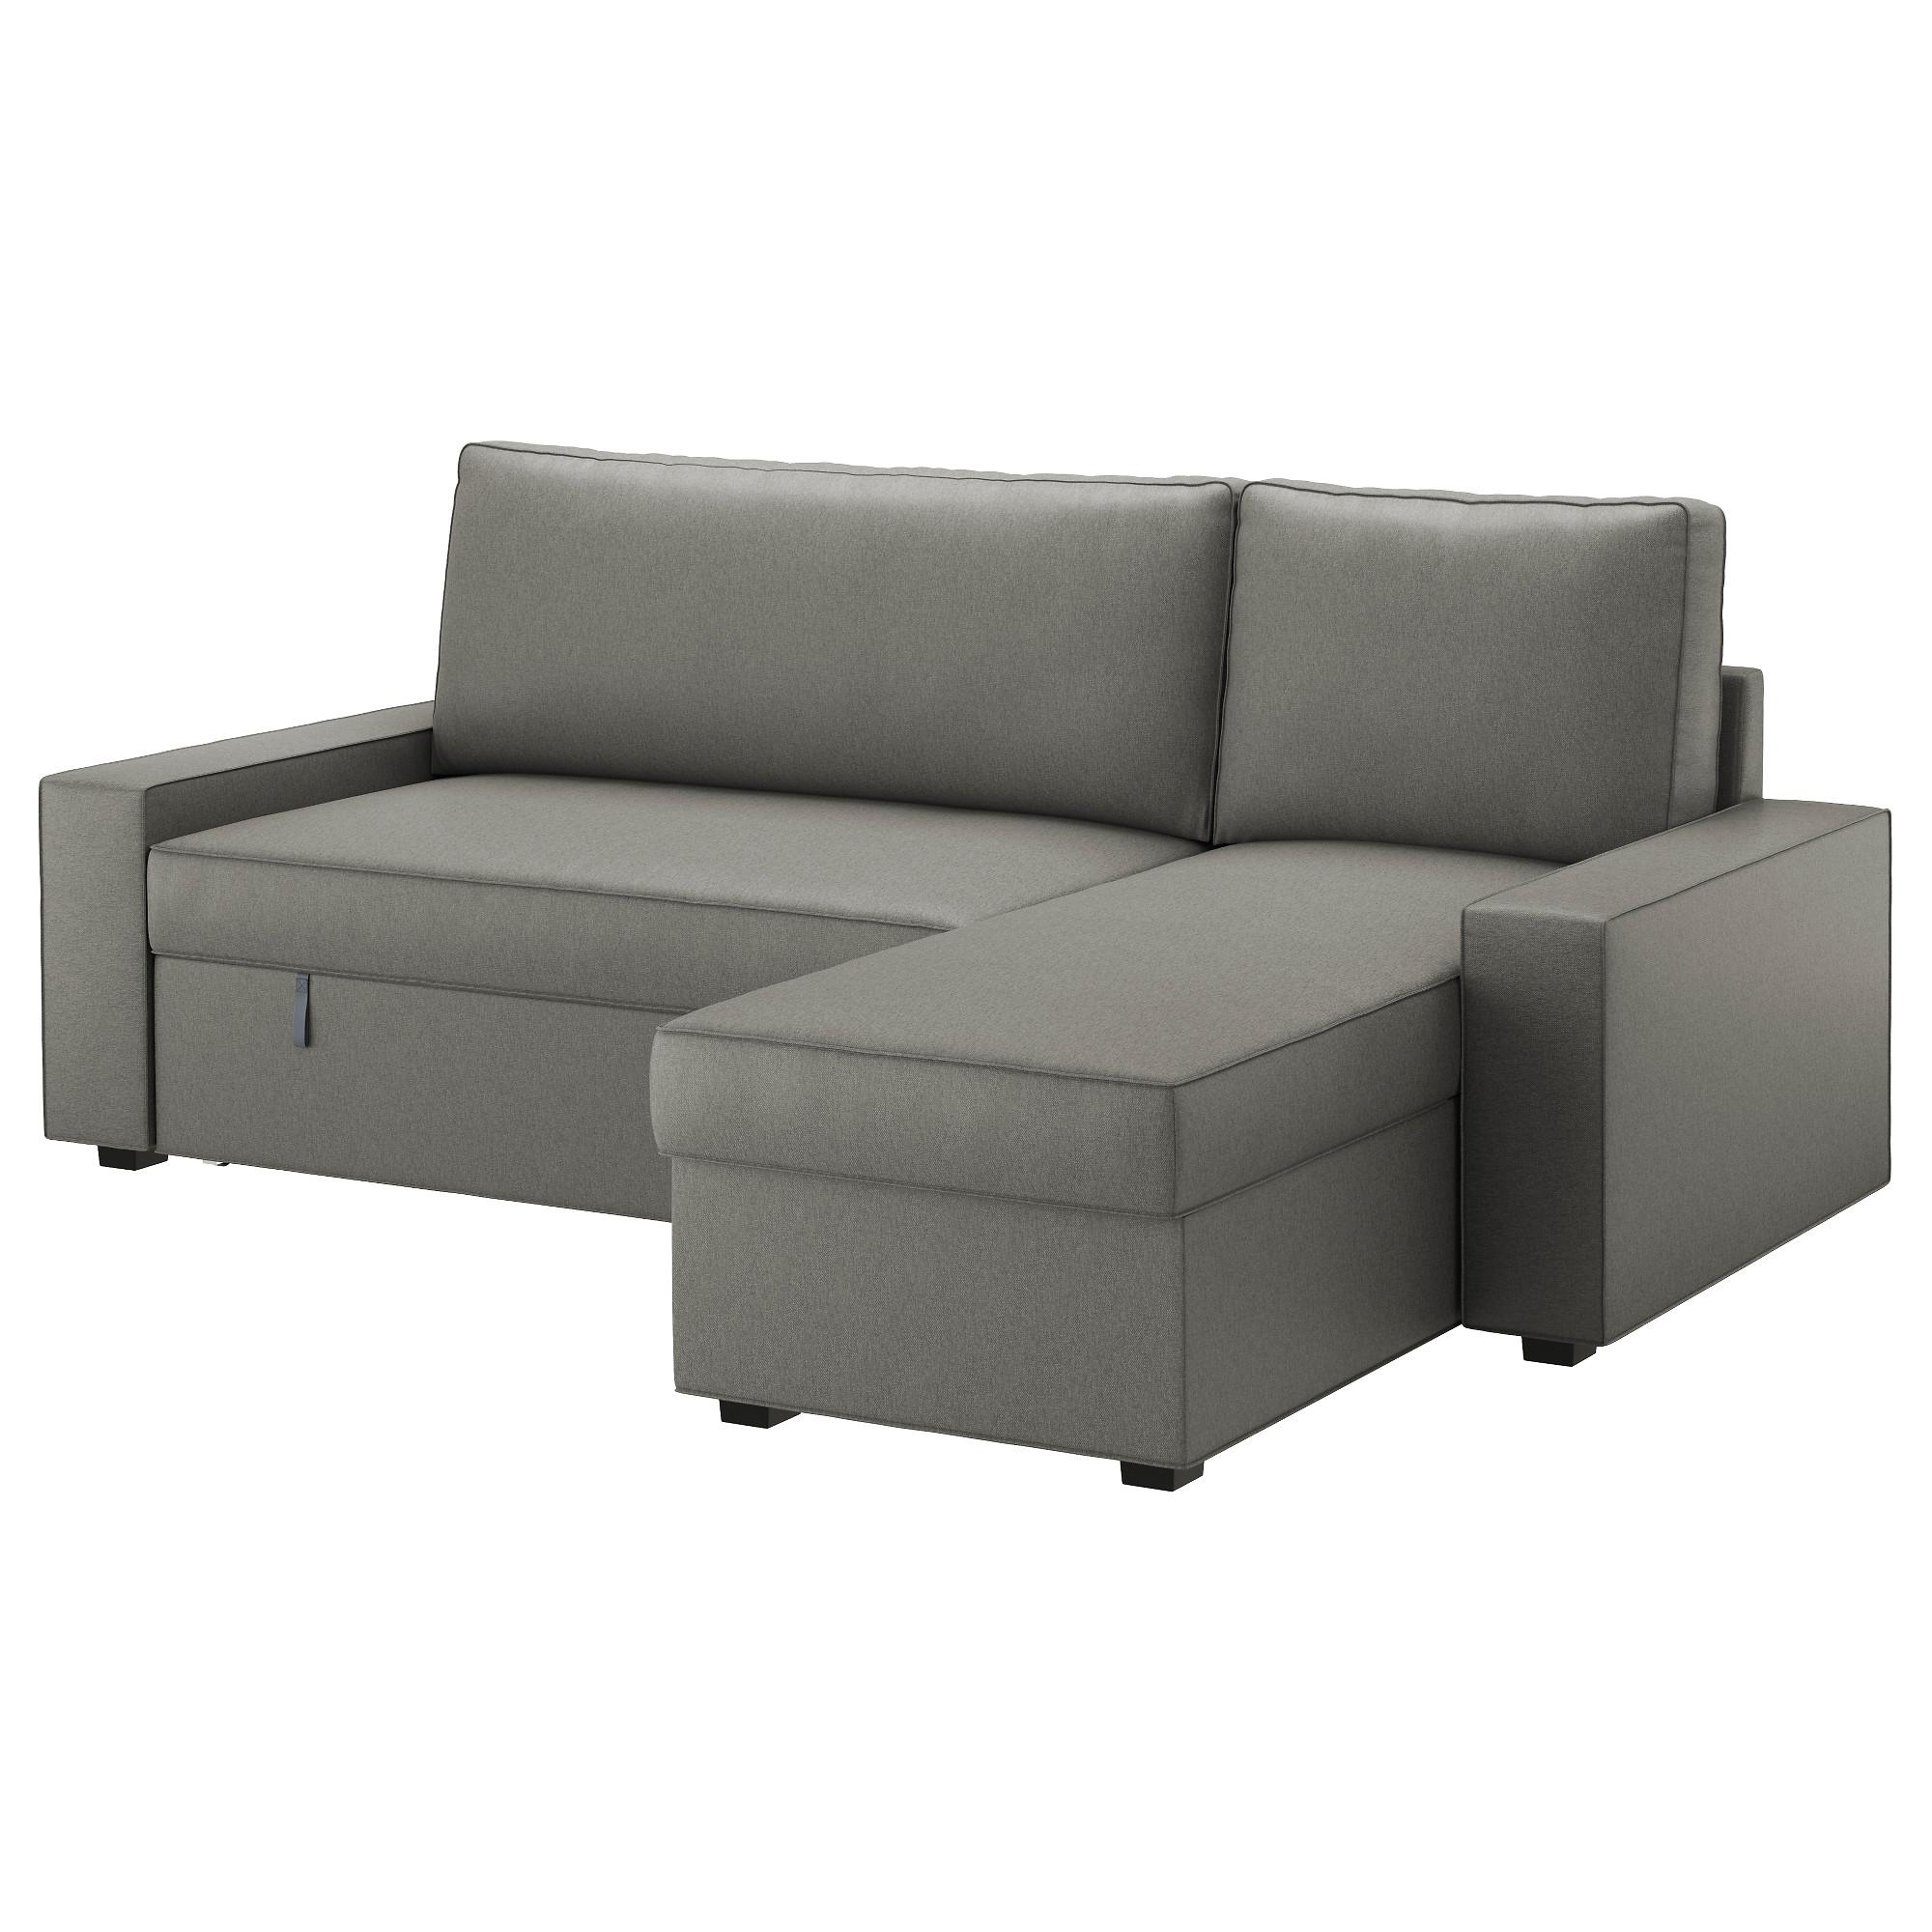 20 best ideas chaise longue sofa beds sofa ideas for Chaise longue beds